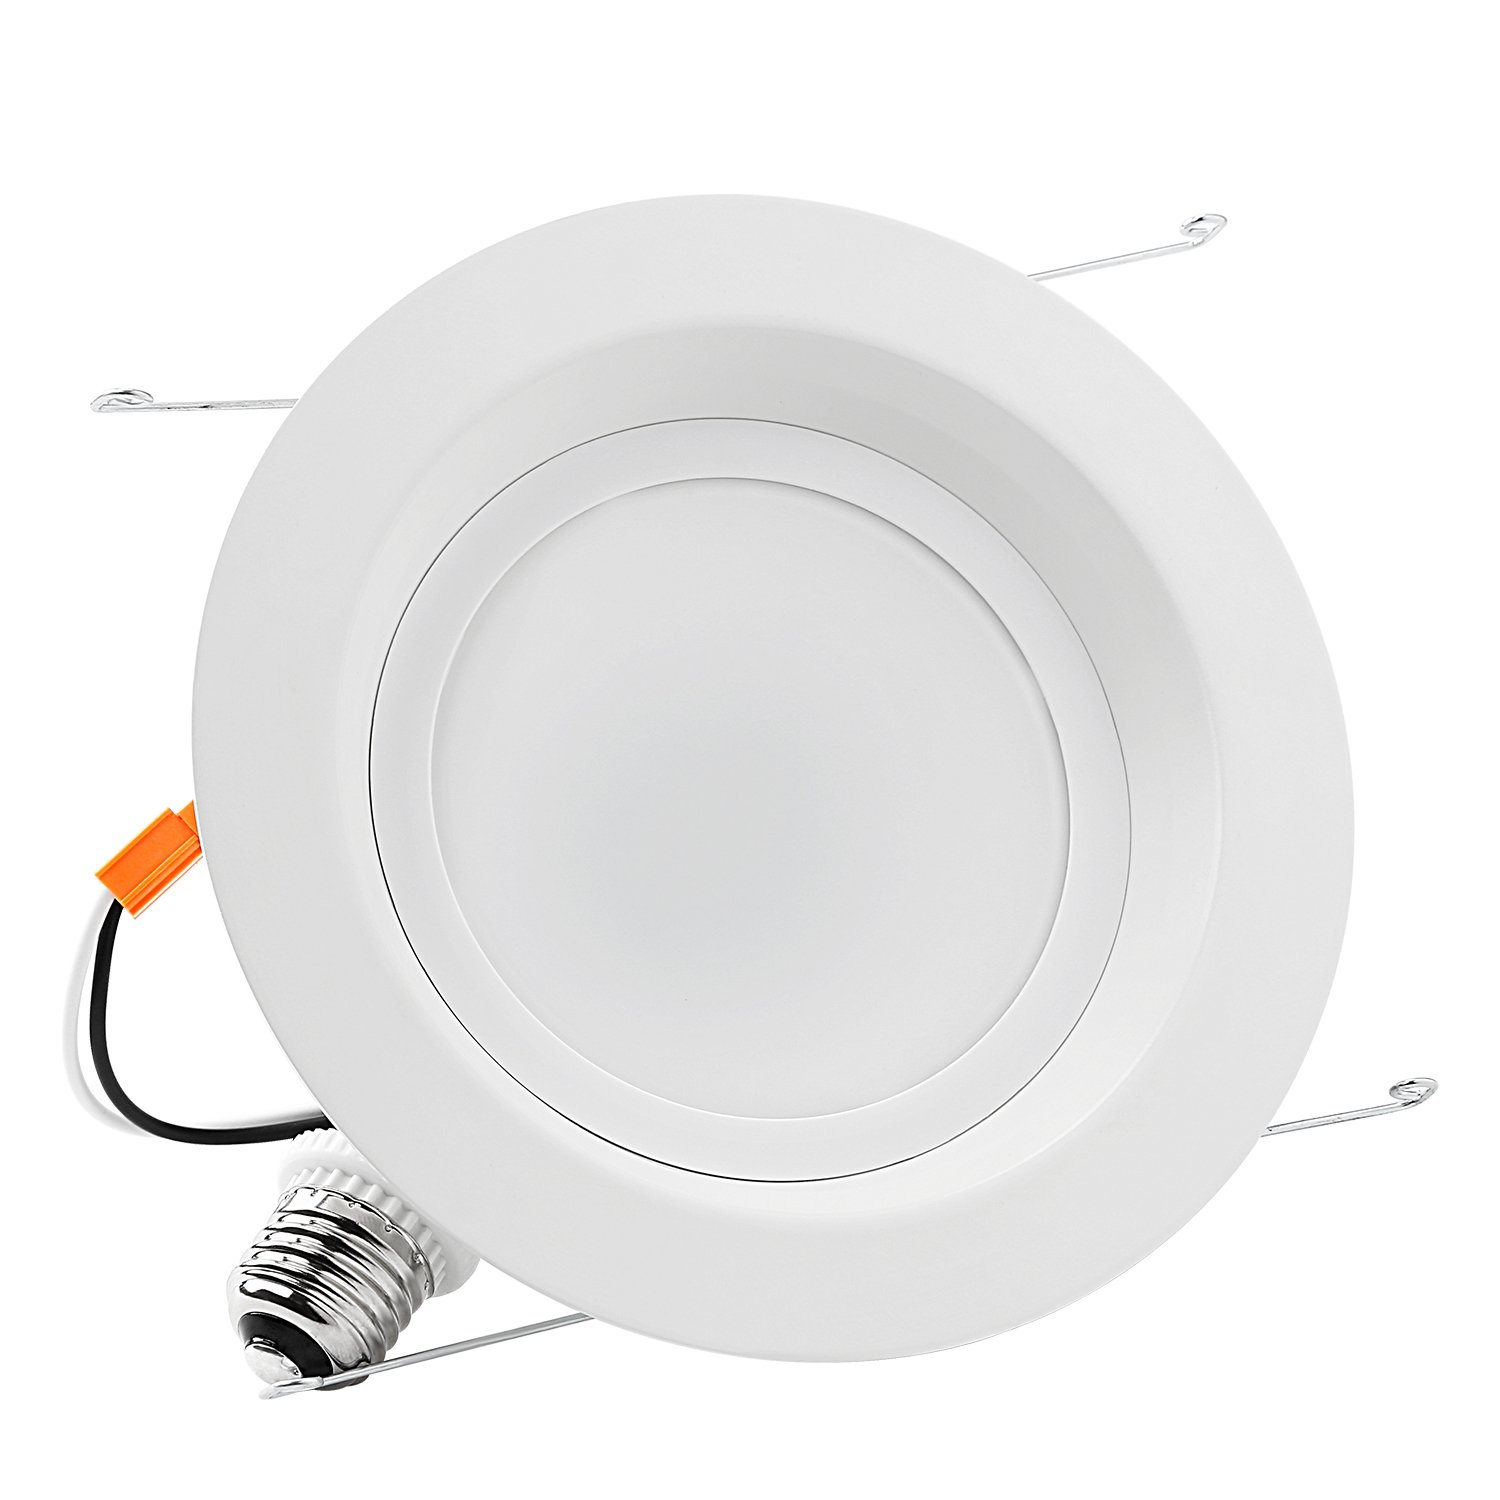 TORCHSTAR 6inch Dimmable LED Retrofit Recessed Downlight, LUTRON Caseta Dimmer Compatible, ENERGY STAR & UL Listed 17W (120W Equiv.